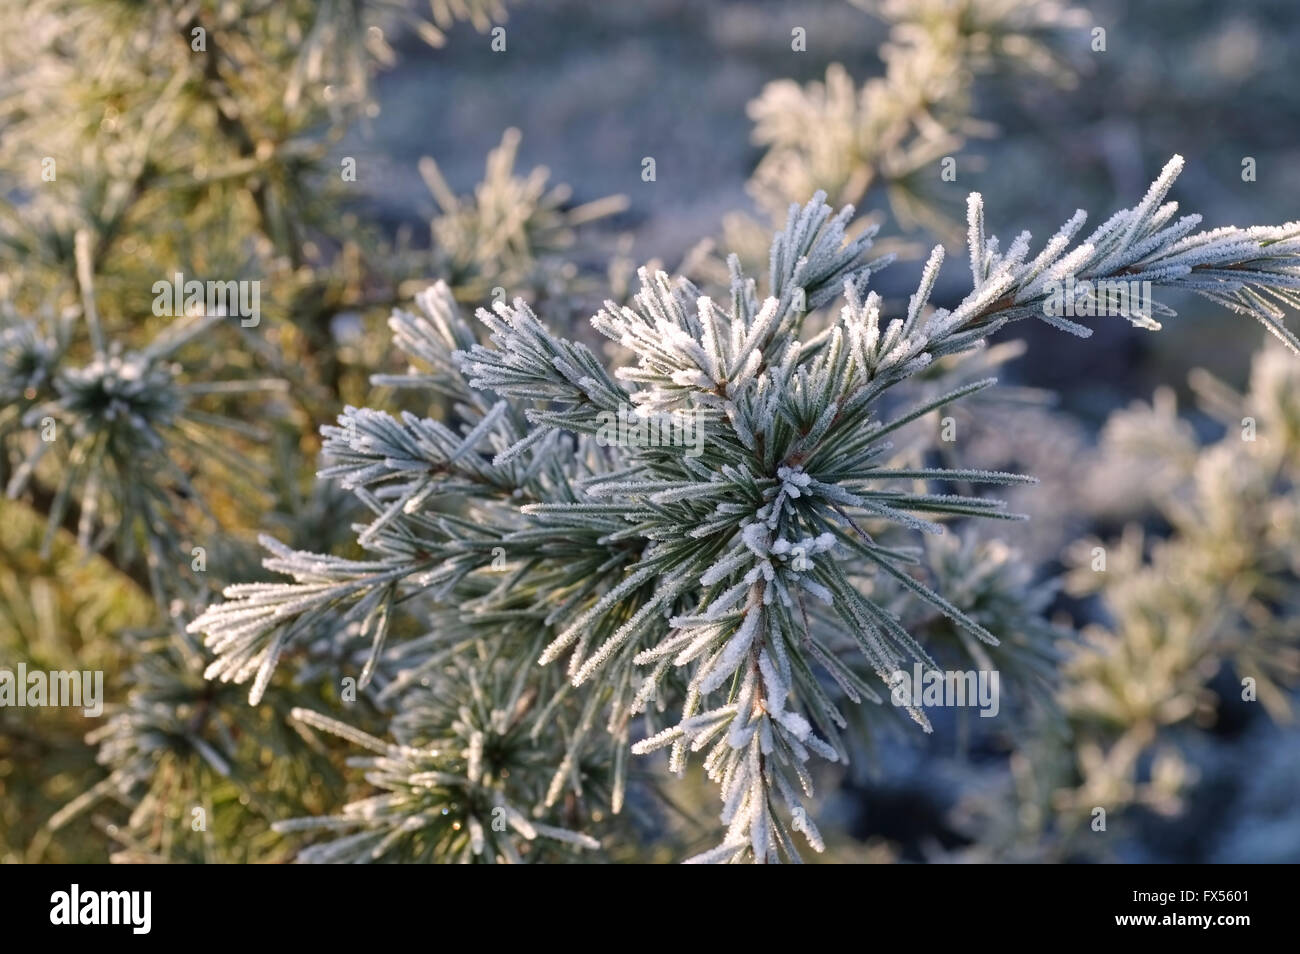 Kiefernzweig mit Raureif im Winter - pine twig with hoarfrost in winter Stock Photo